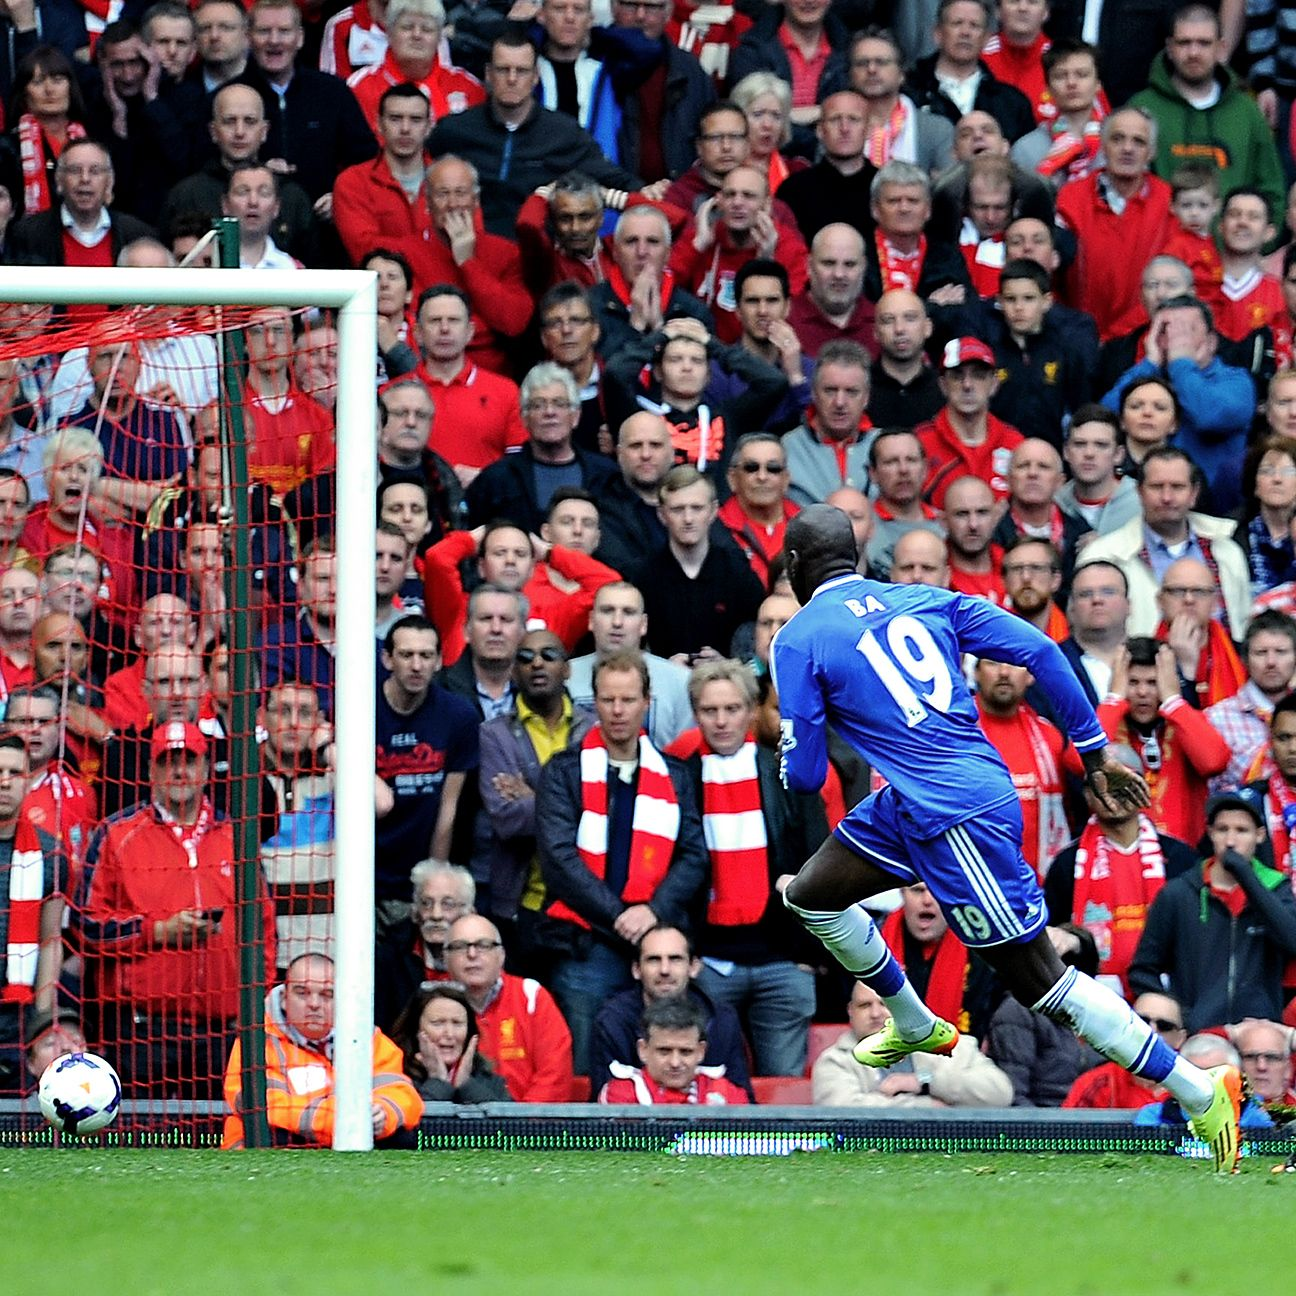 Demba Ba broke Liverpool hearts last season by dashing their title hopes when he scored off of Steven Gerrard's slip.